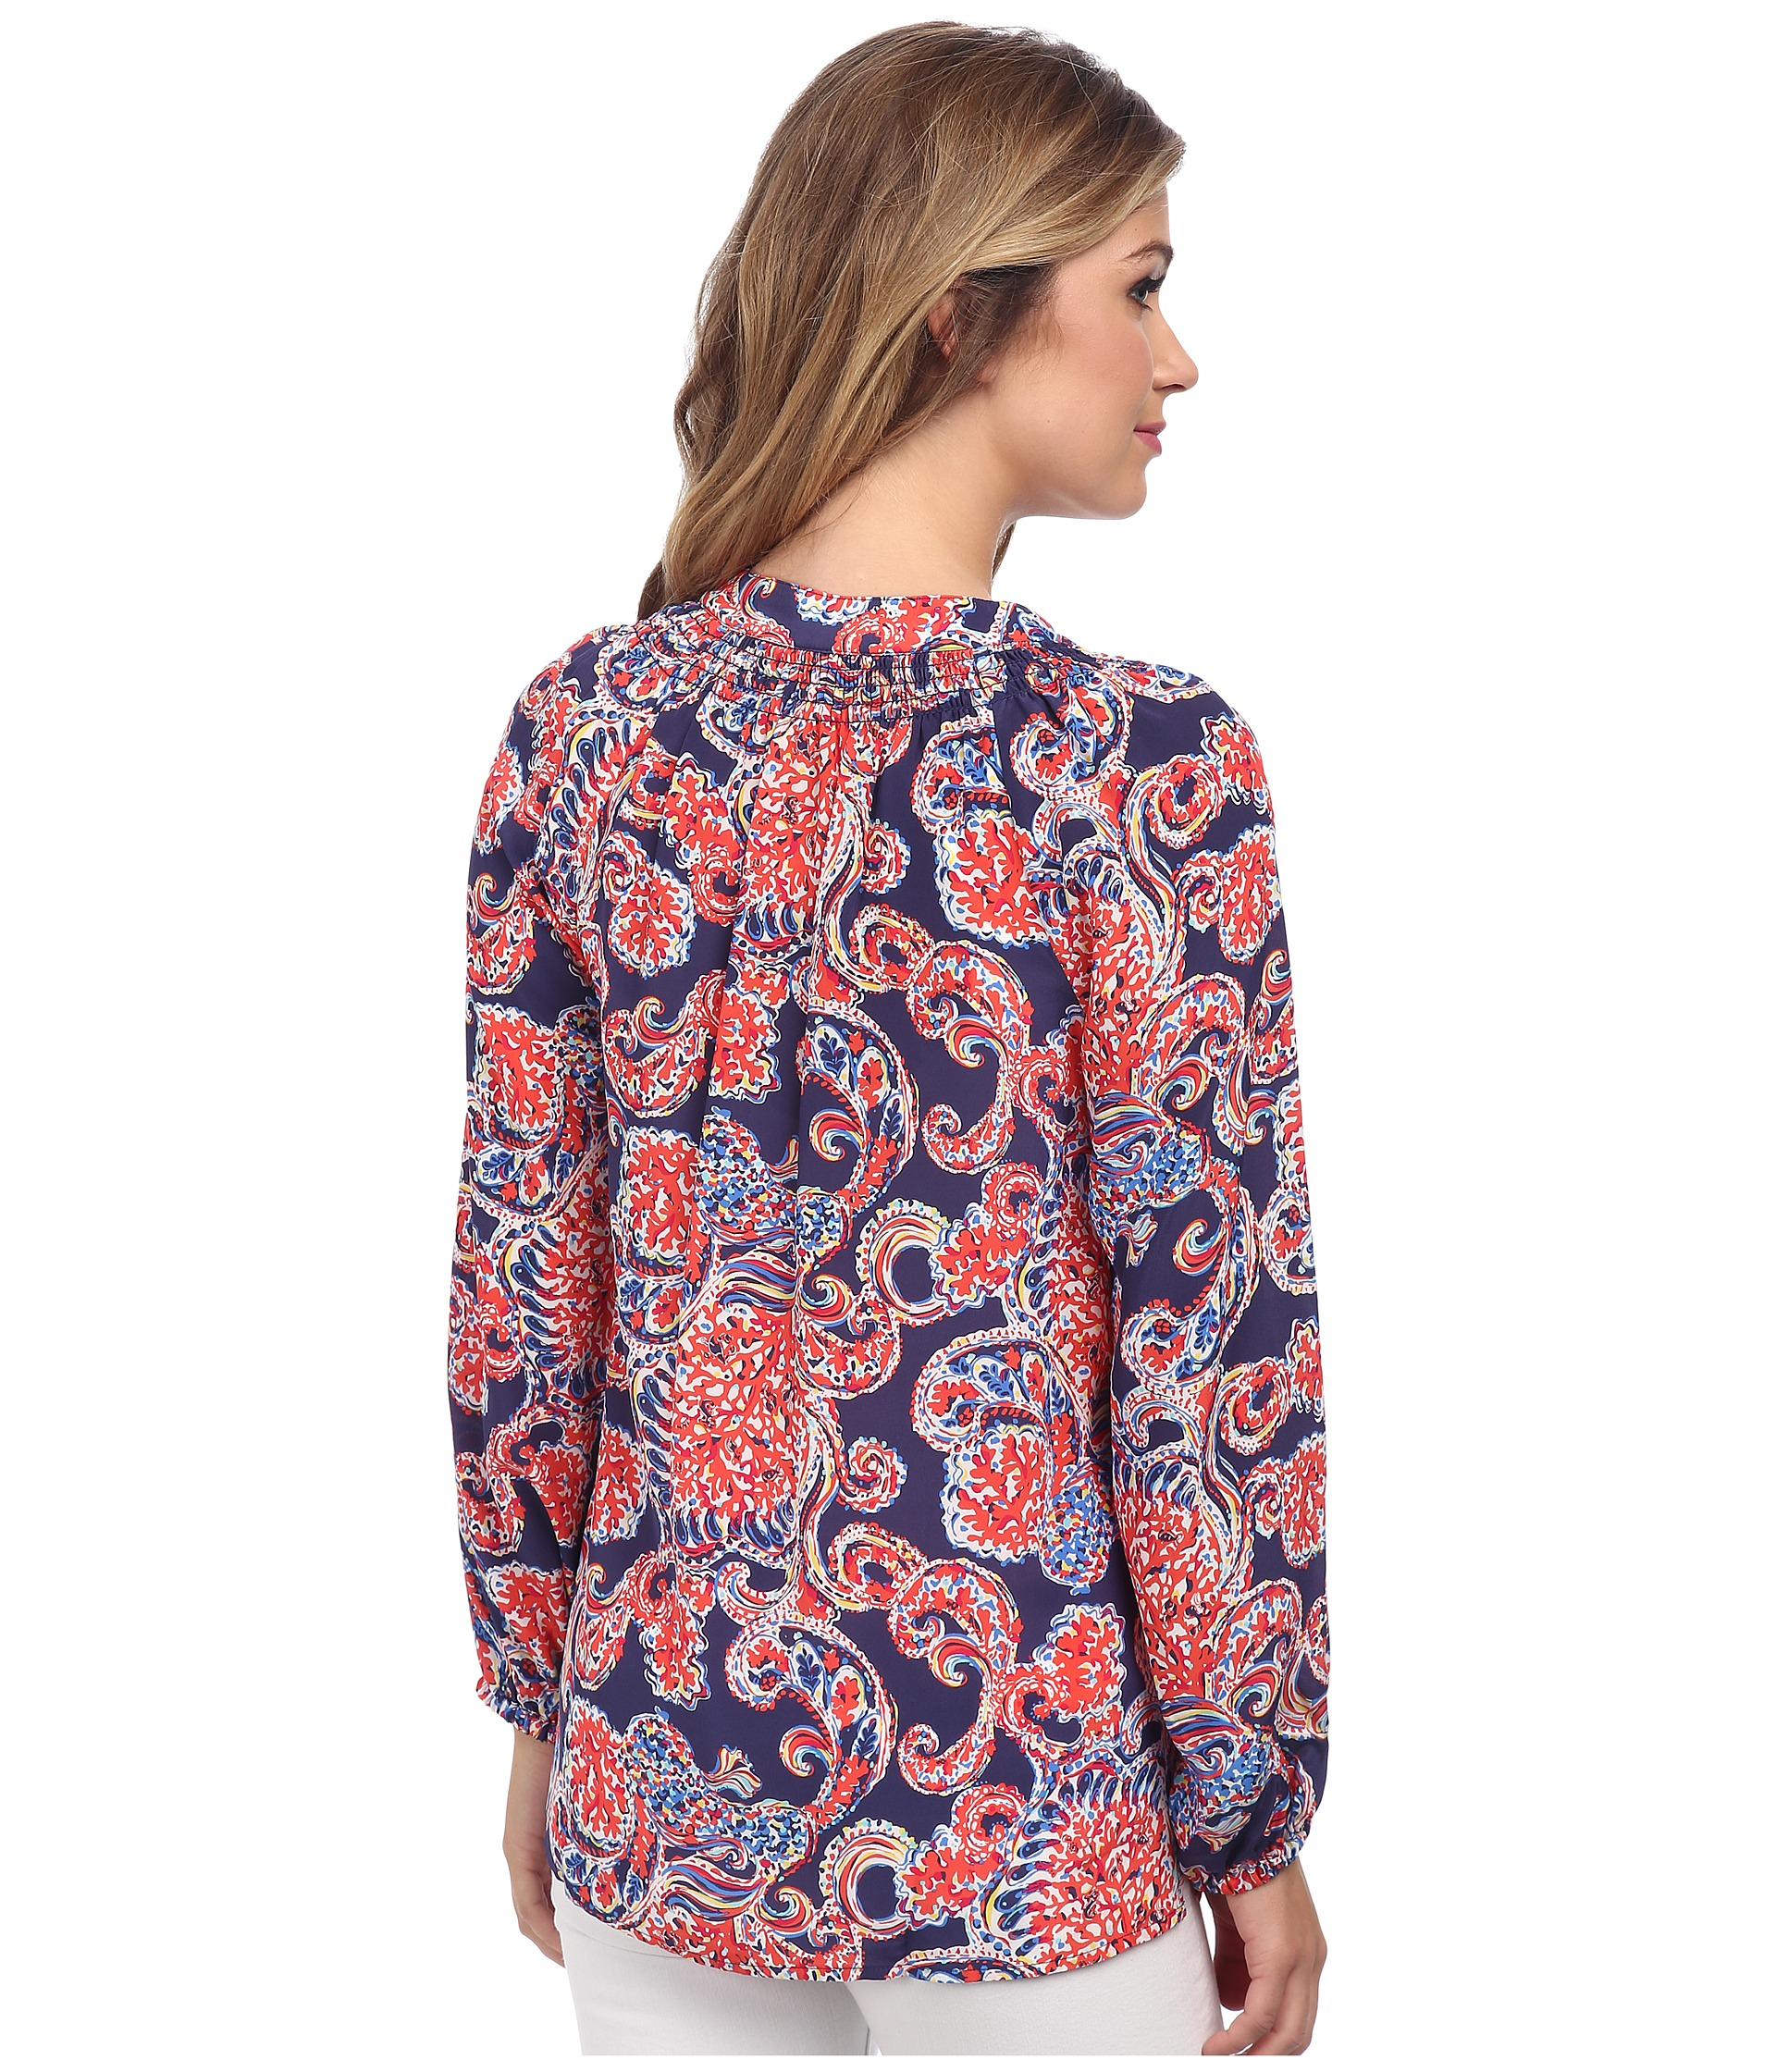 3fc1e6077bbeaf Lilly Pulitzer Printed Elsa Top in Blue - Lyst